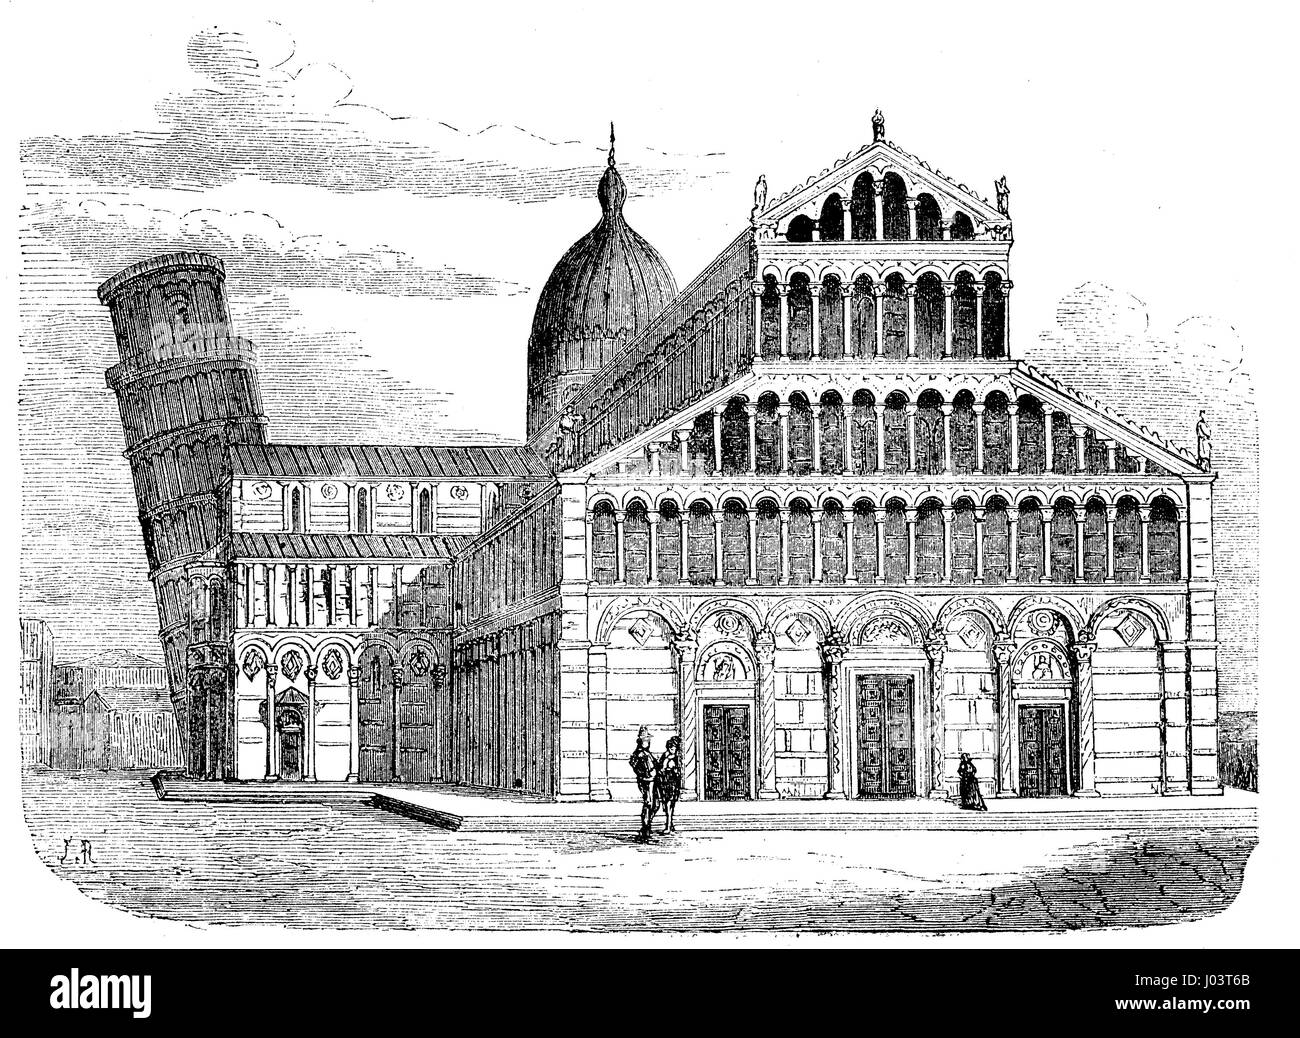 Vintage engraving of Pisa cathedral with the leaning tower, dedicated to the Assumption of the Virgin Mary, in the - Stock Image